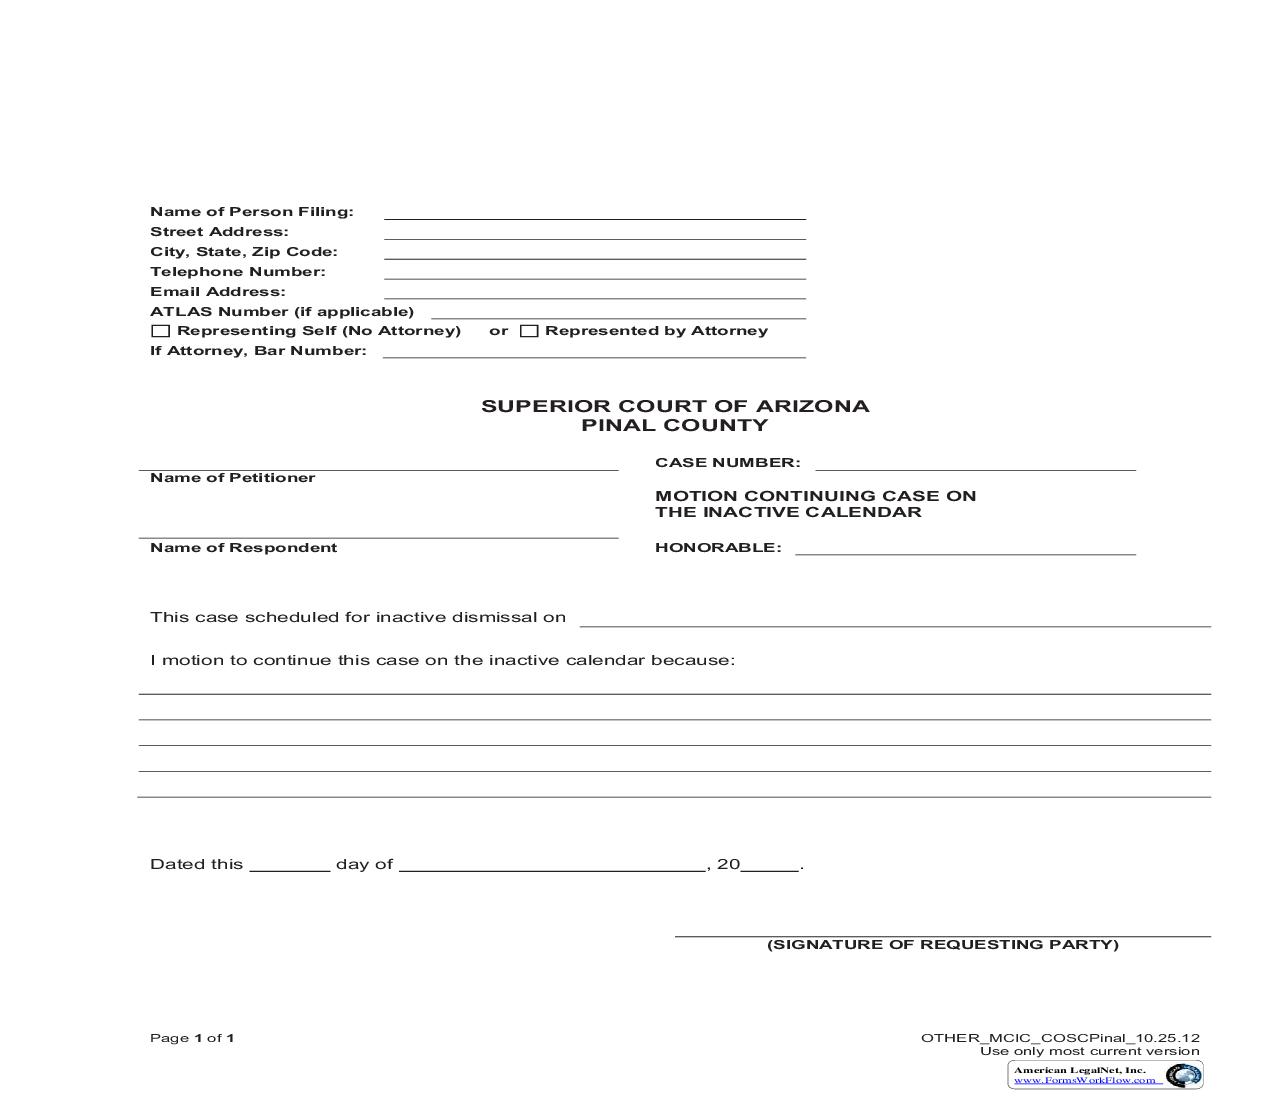 Motion Continuing Case On The Inactive Calendar | Pdf Fpdf Doc Docx | Arizona